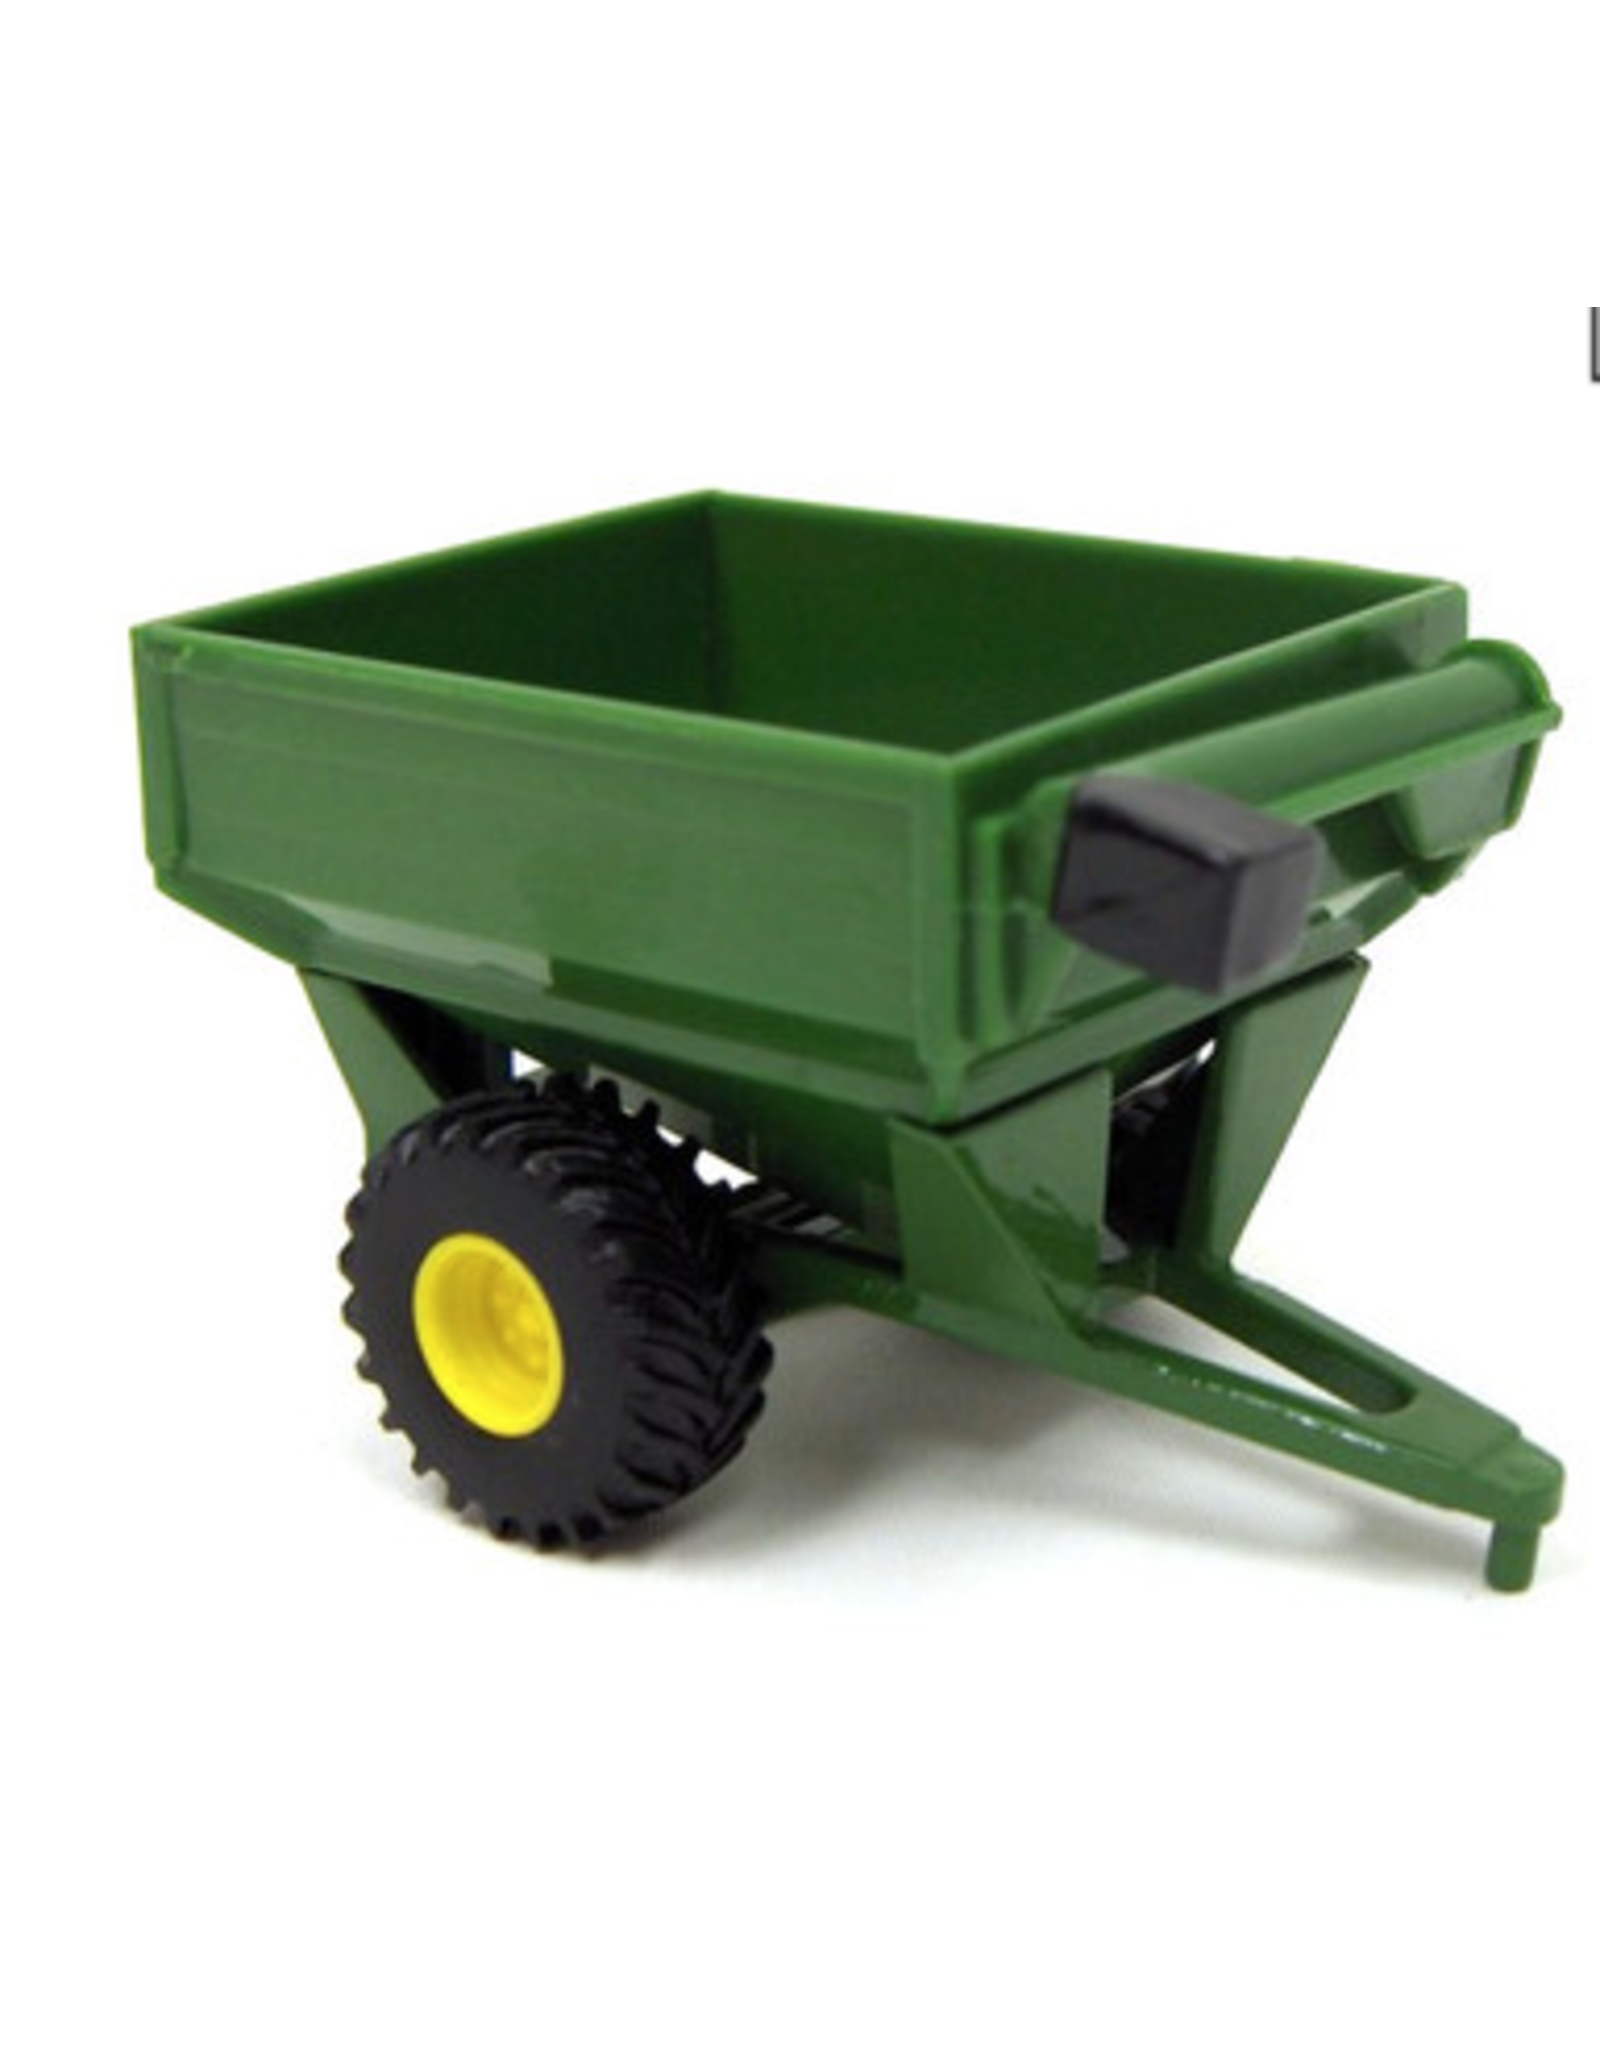 Ertl John Deere Green Mini Grain Cart